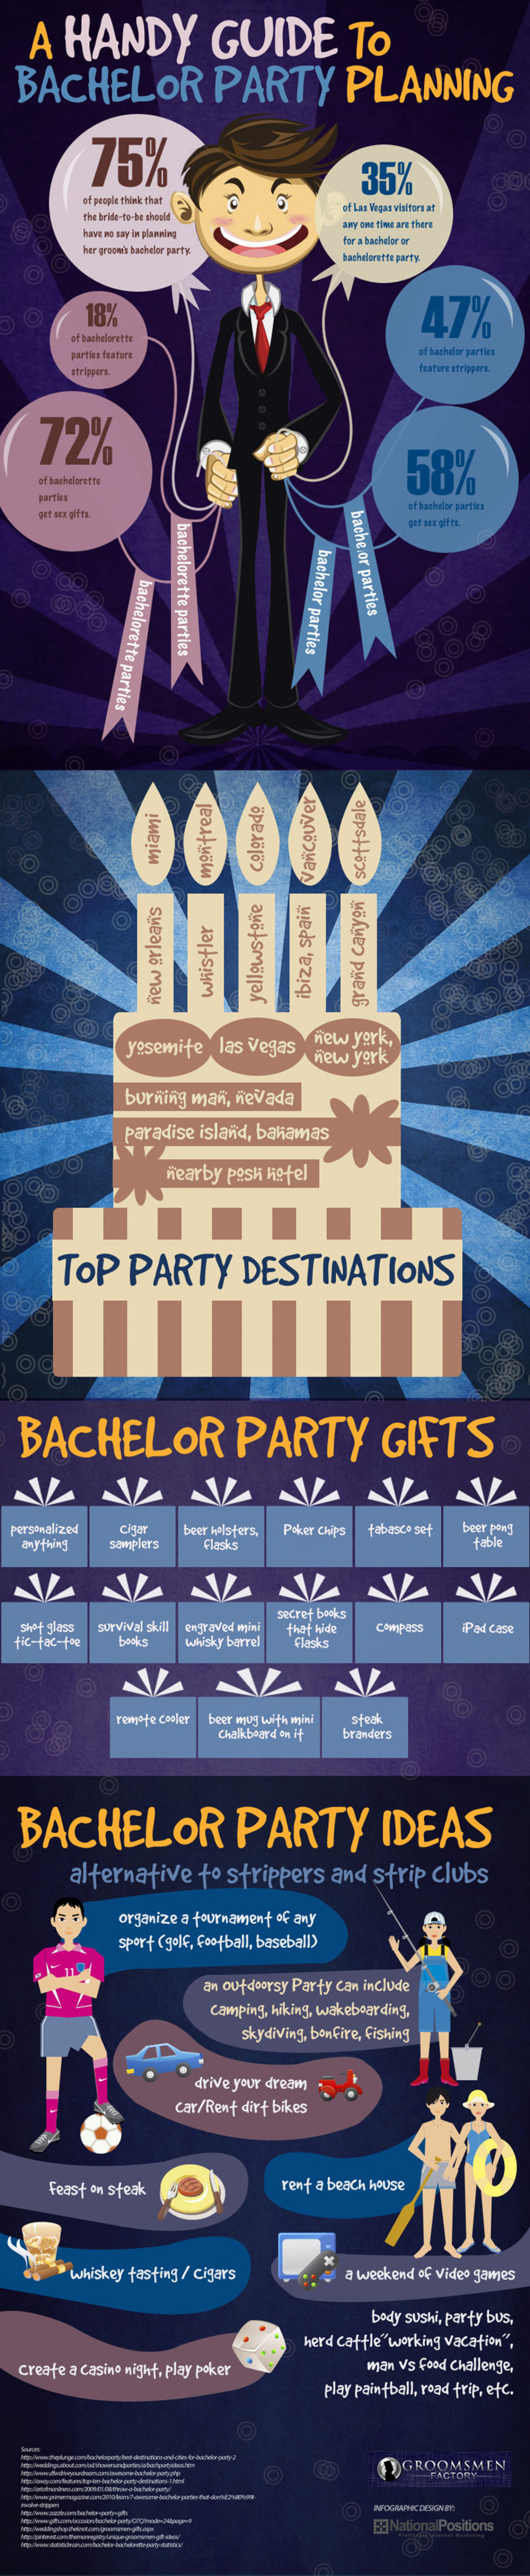 A Handy Guide To Bachelor Party Planning Infographic